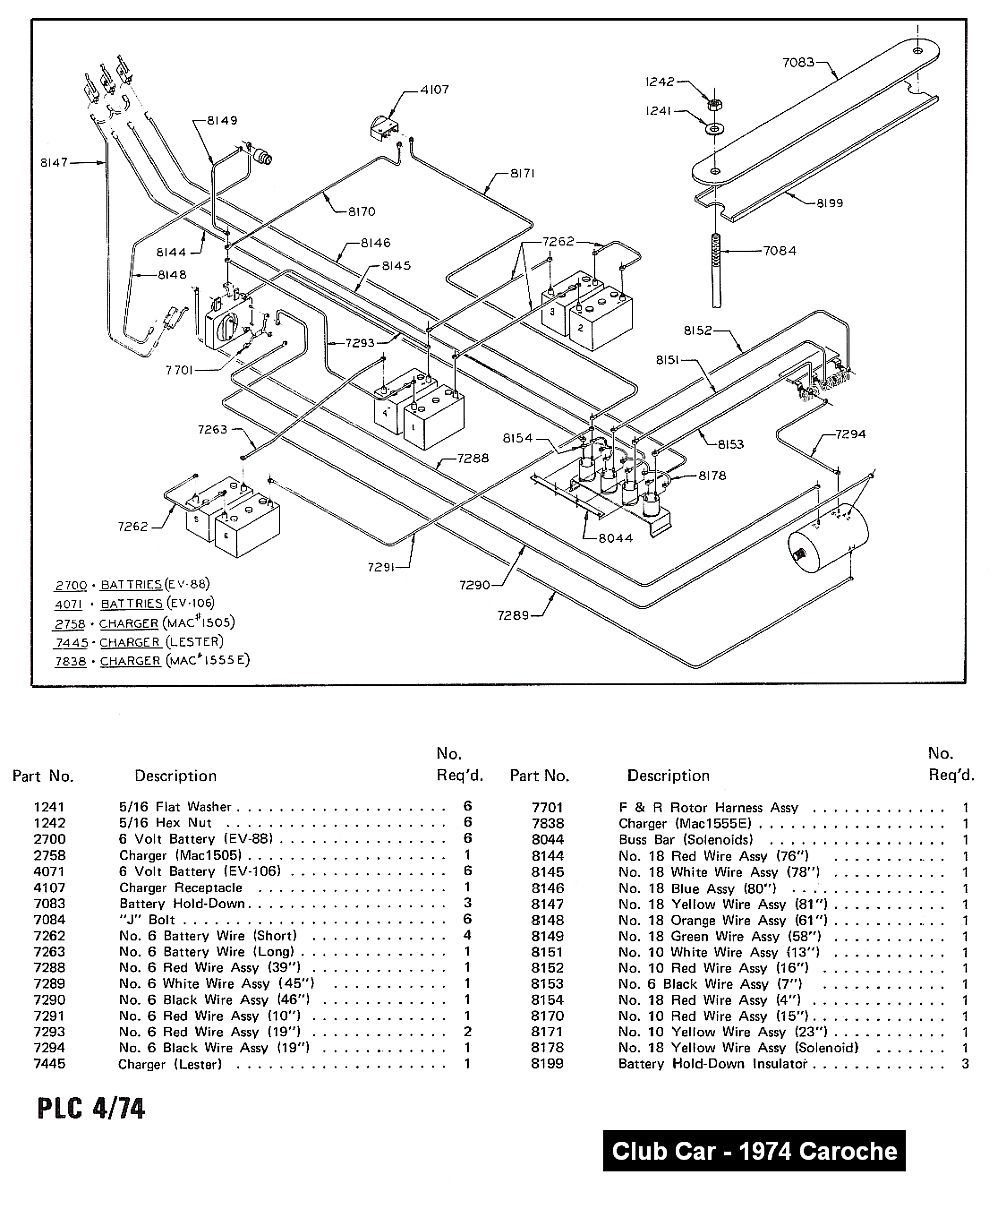 CC_74_Caroche vintagegolfcartparts com 2000 club car wiring diagram at readyjetset.co